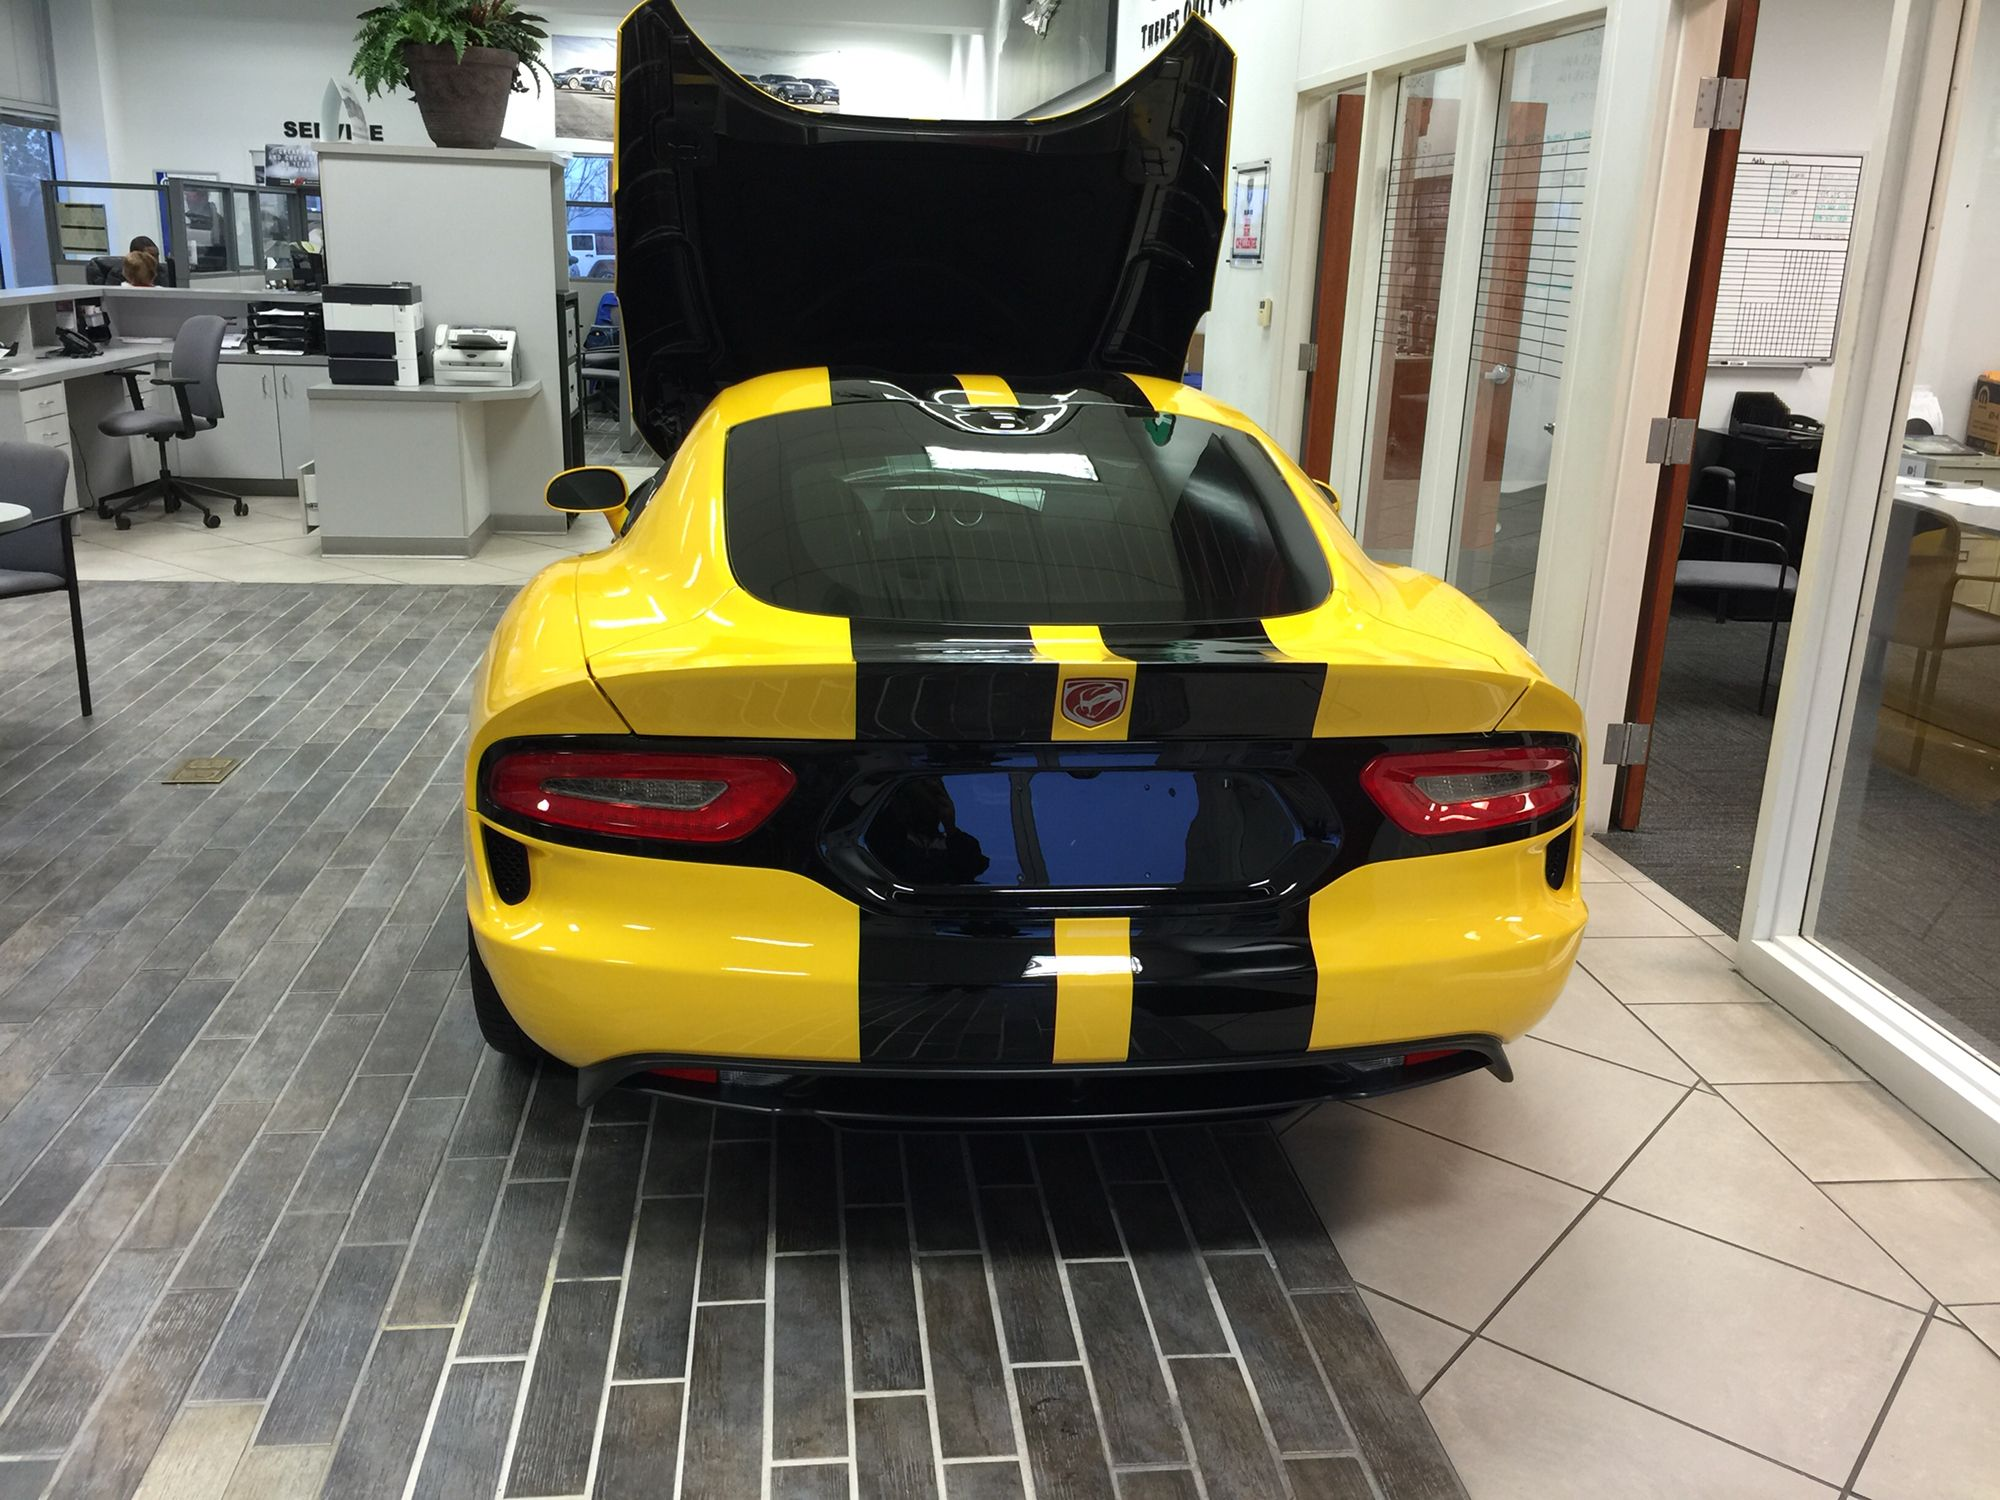 2015 SRT Viper at my local Dodge dealership. My dream car ...